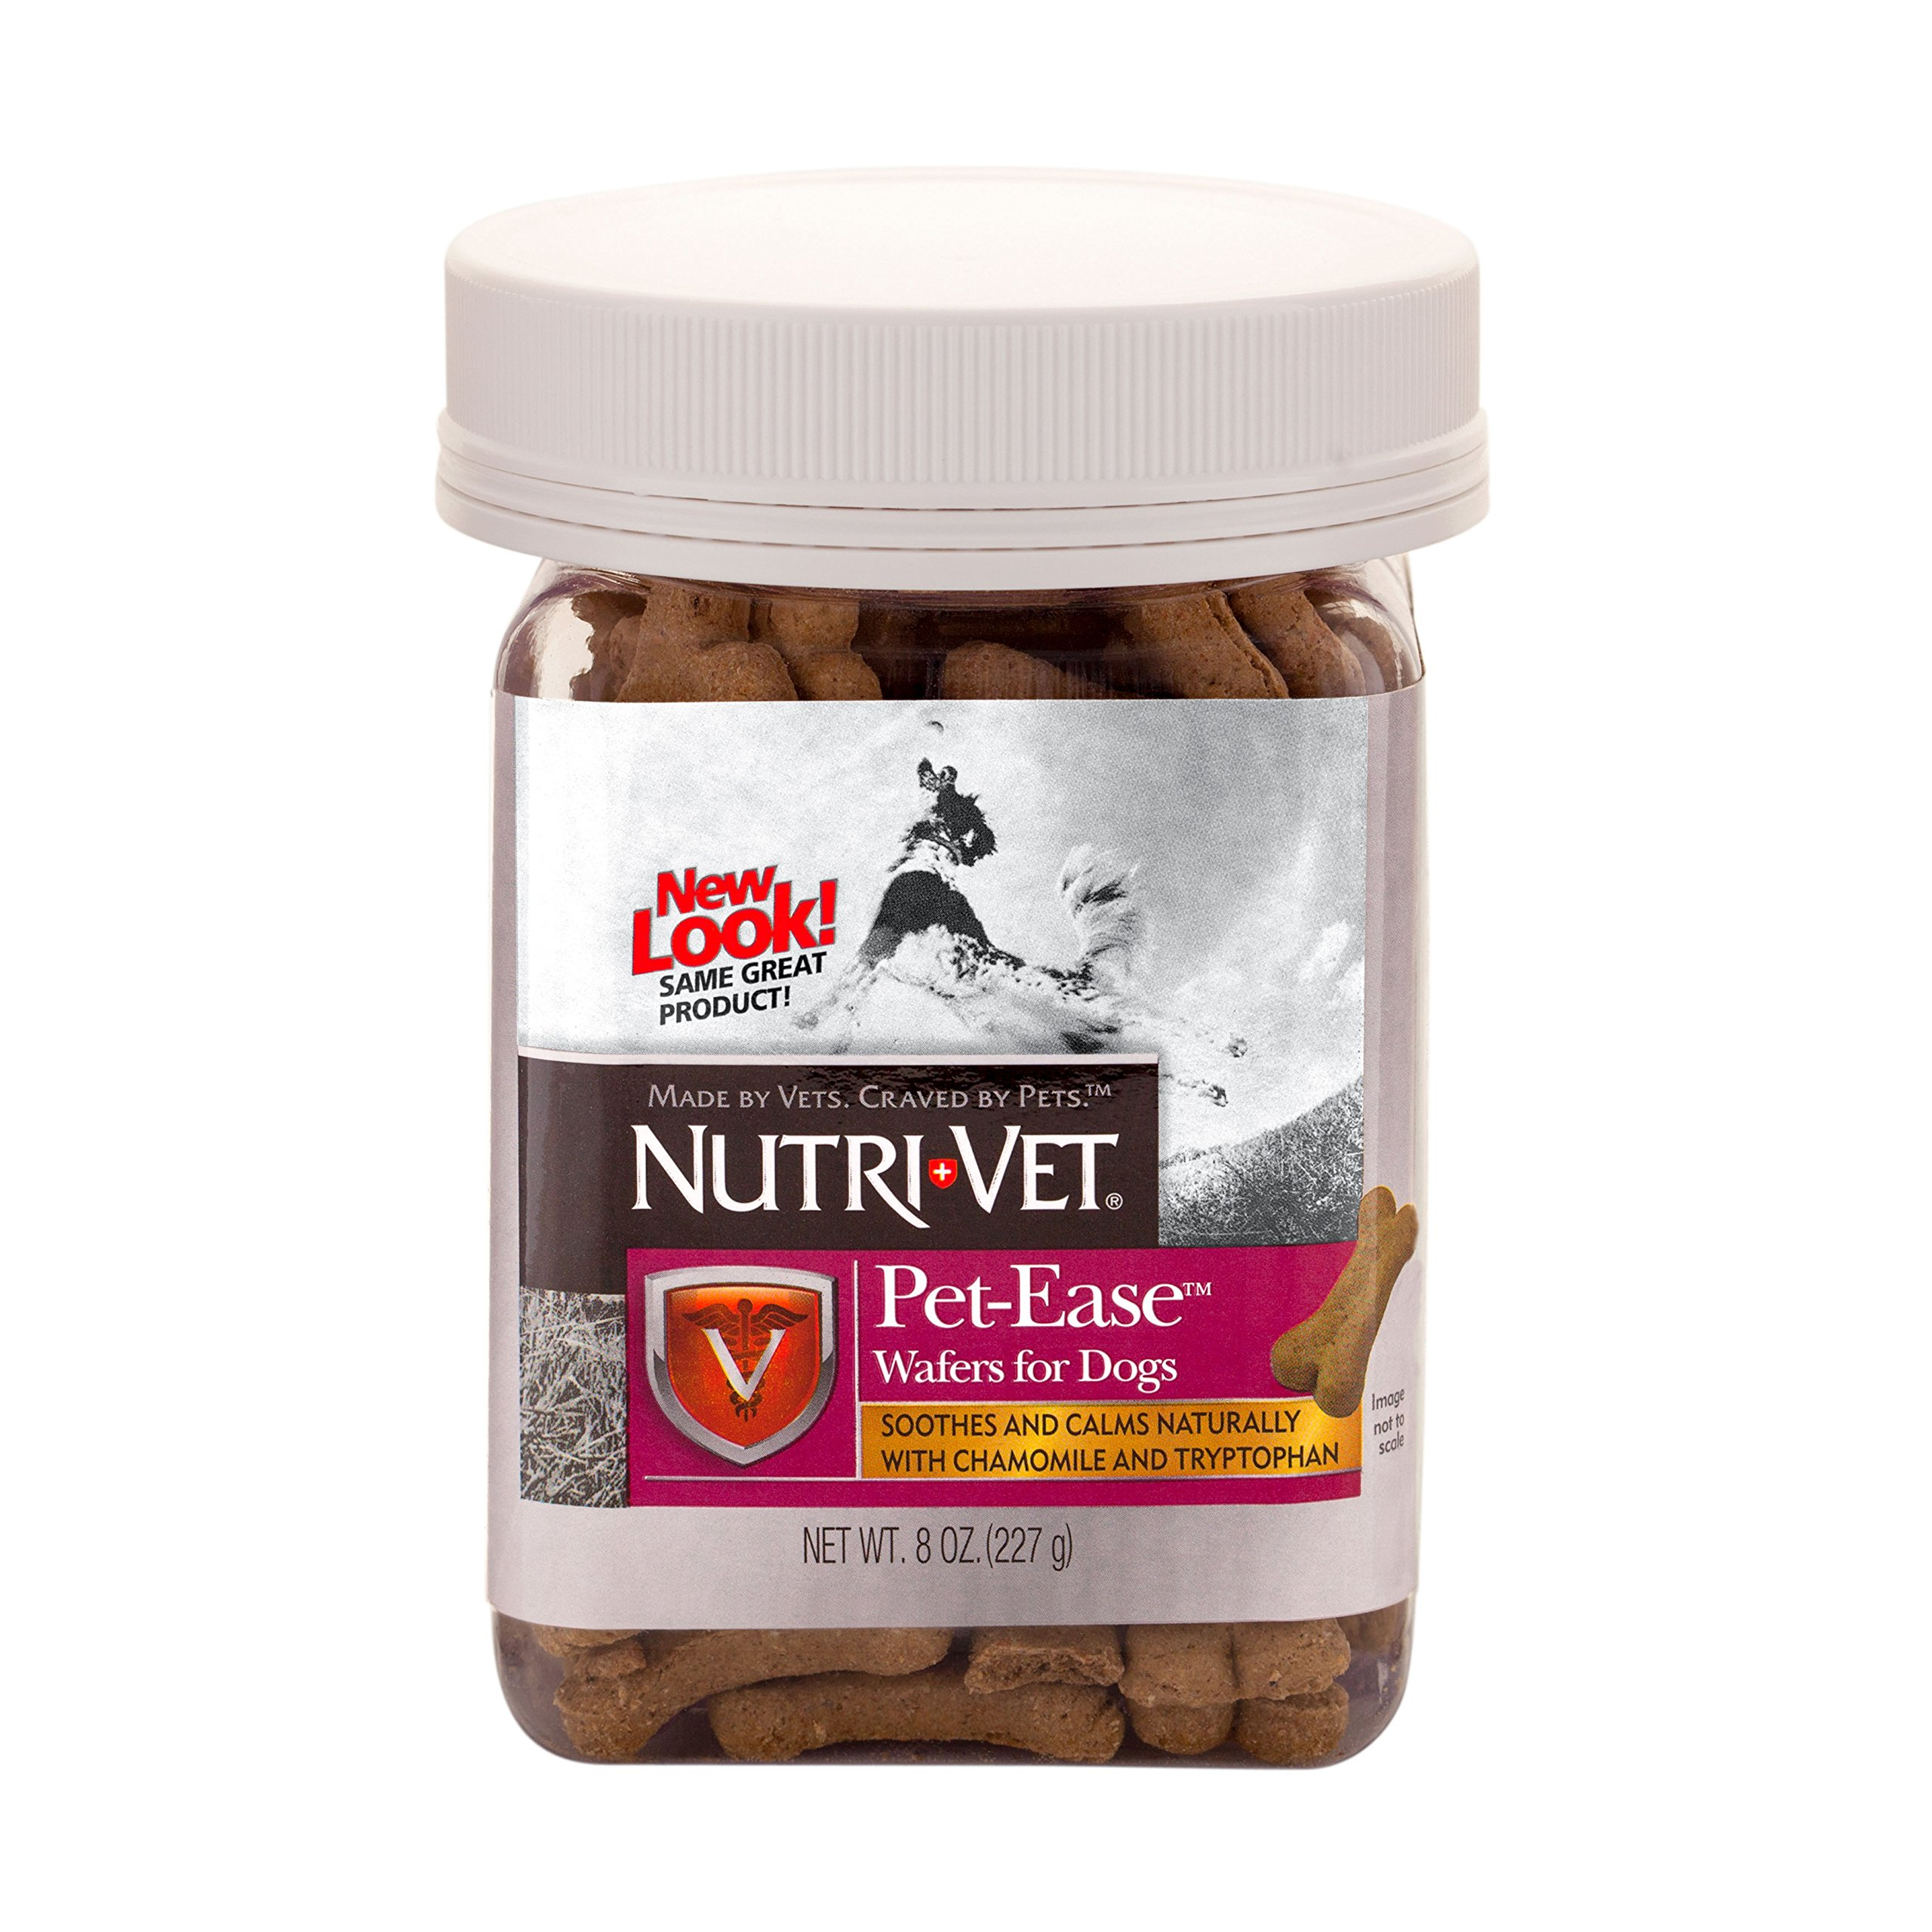 Nutri-Vet Pet-Ease for Dogs Wafers